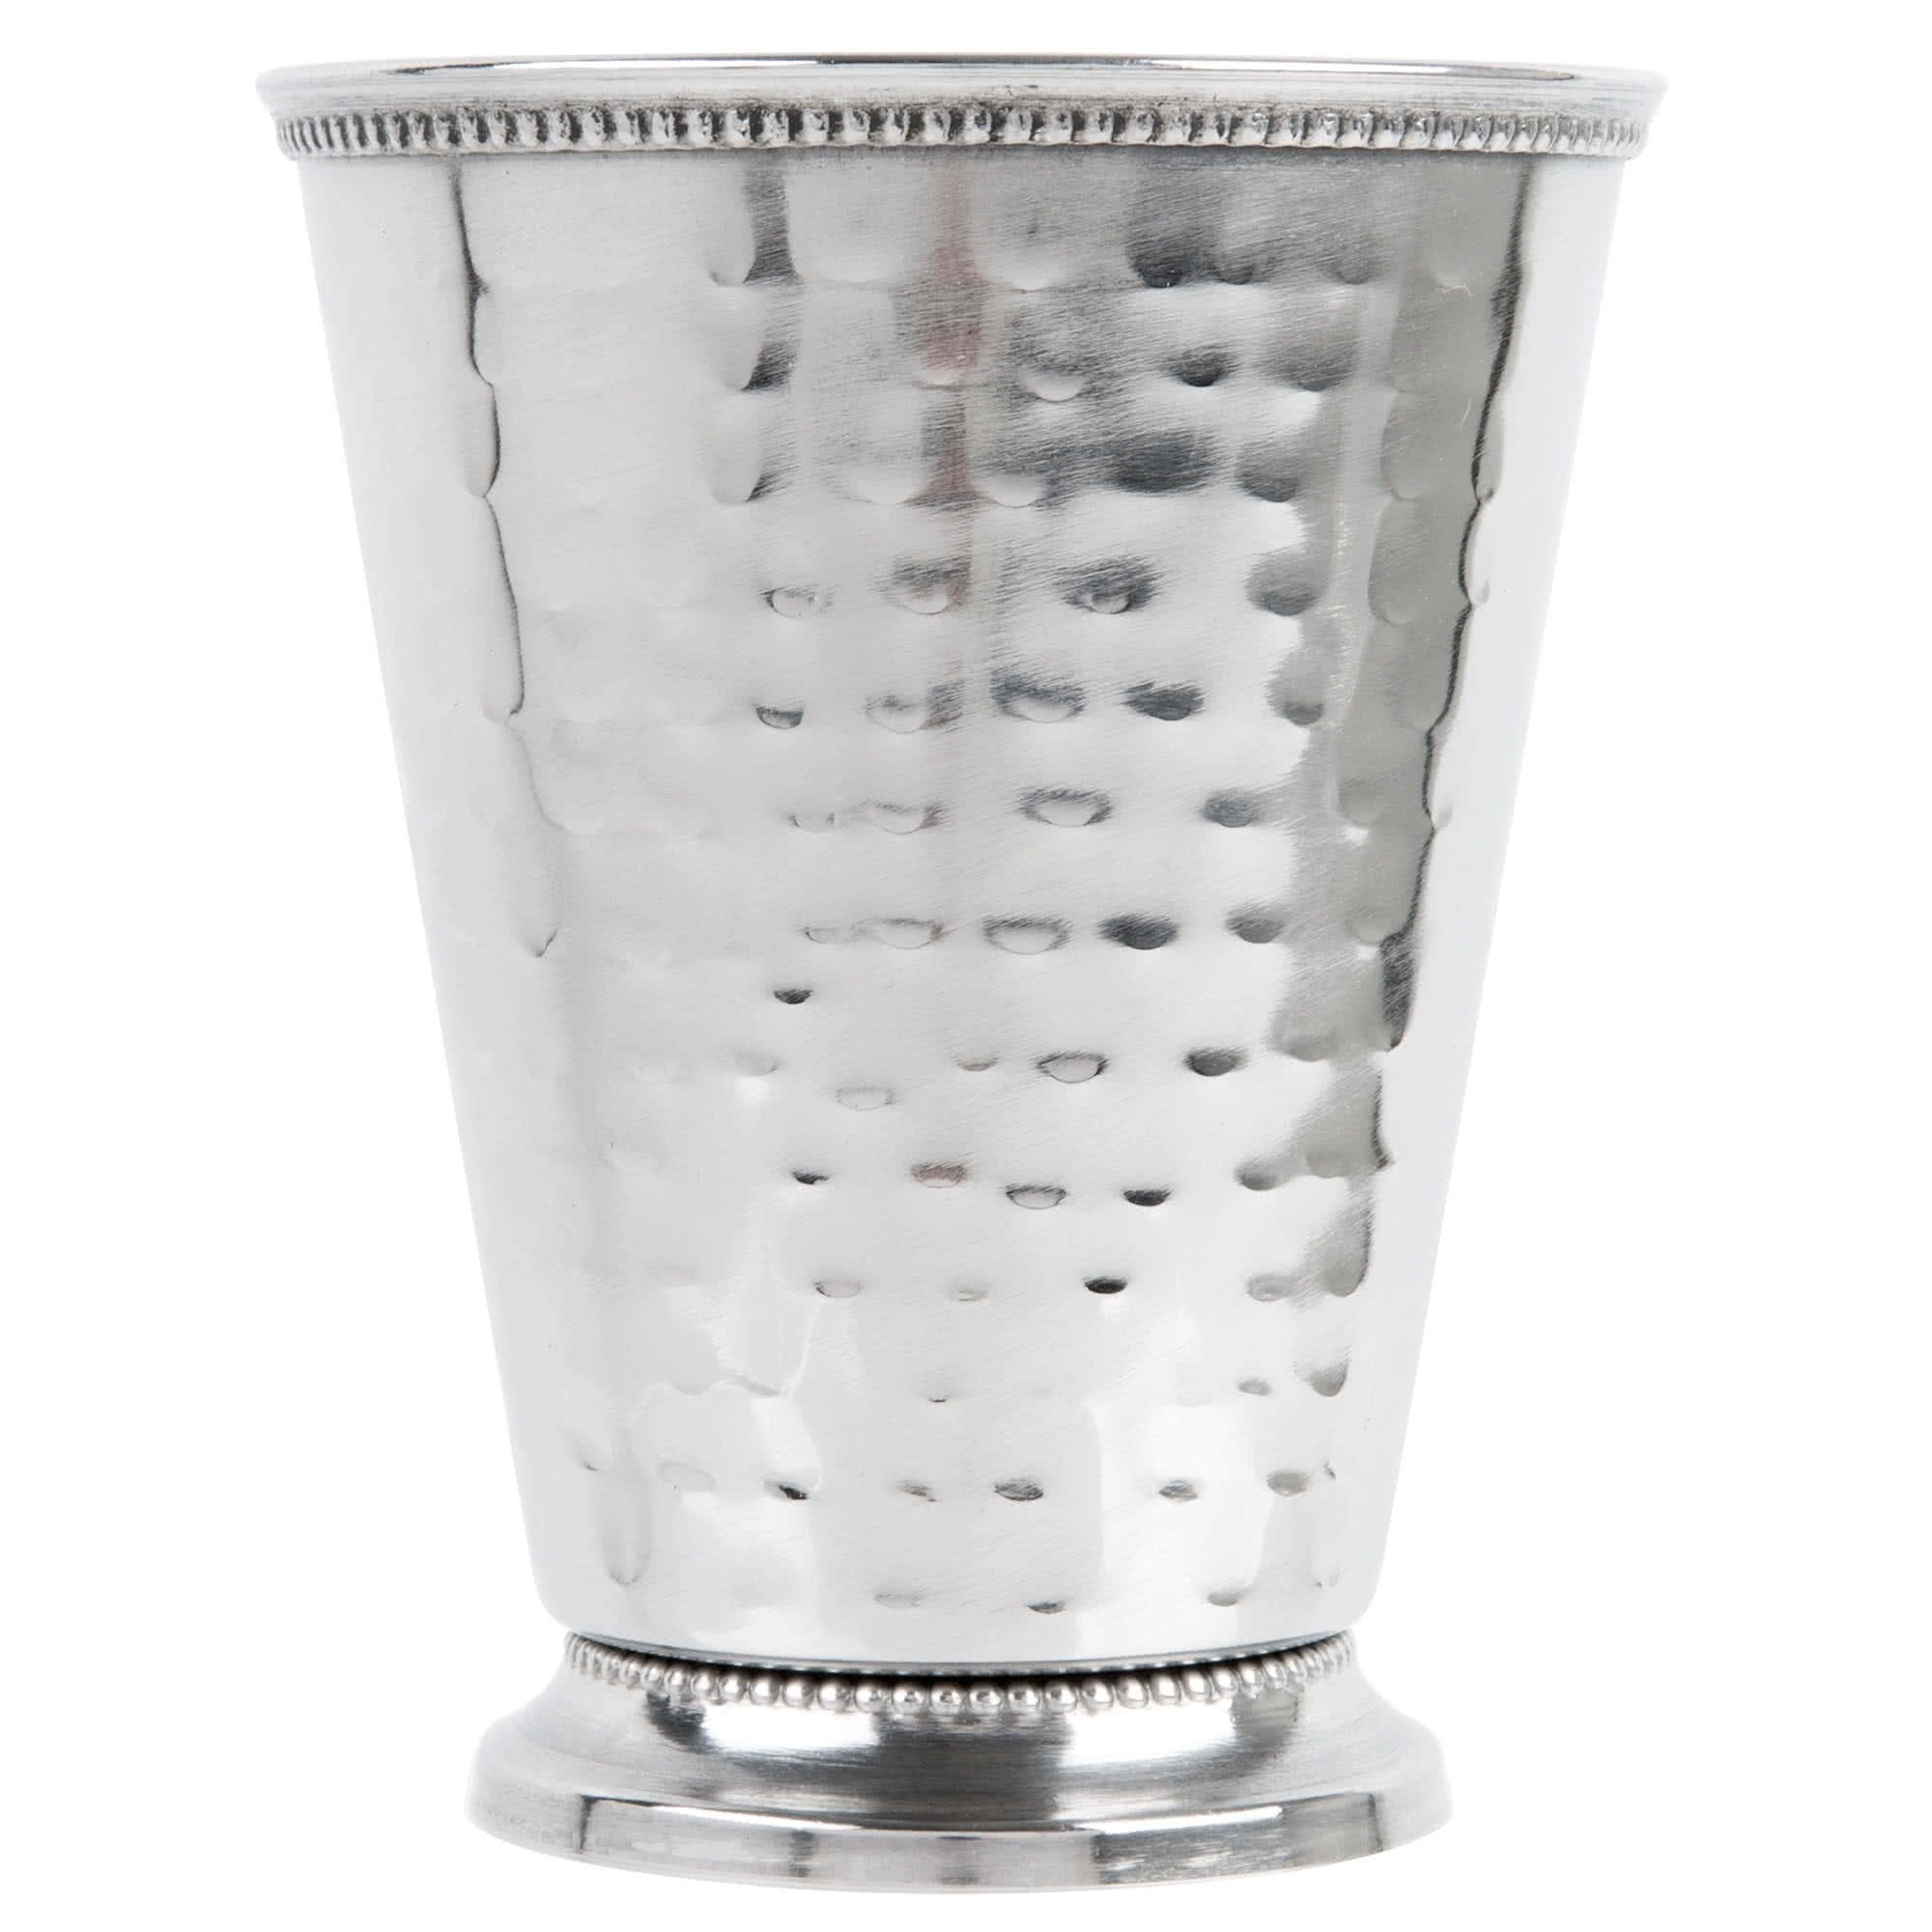 Core 16 oz. Stainless Steel Mint Julep Cup with Hammered Finish and Beaded Detailing - 12/Pack